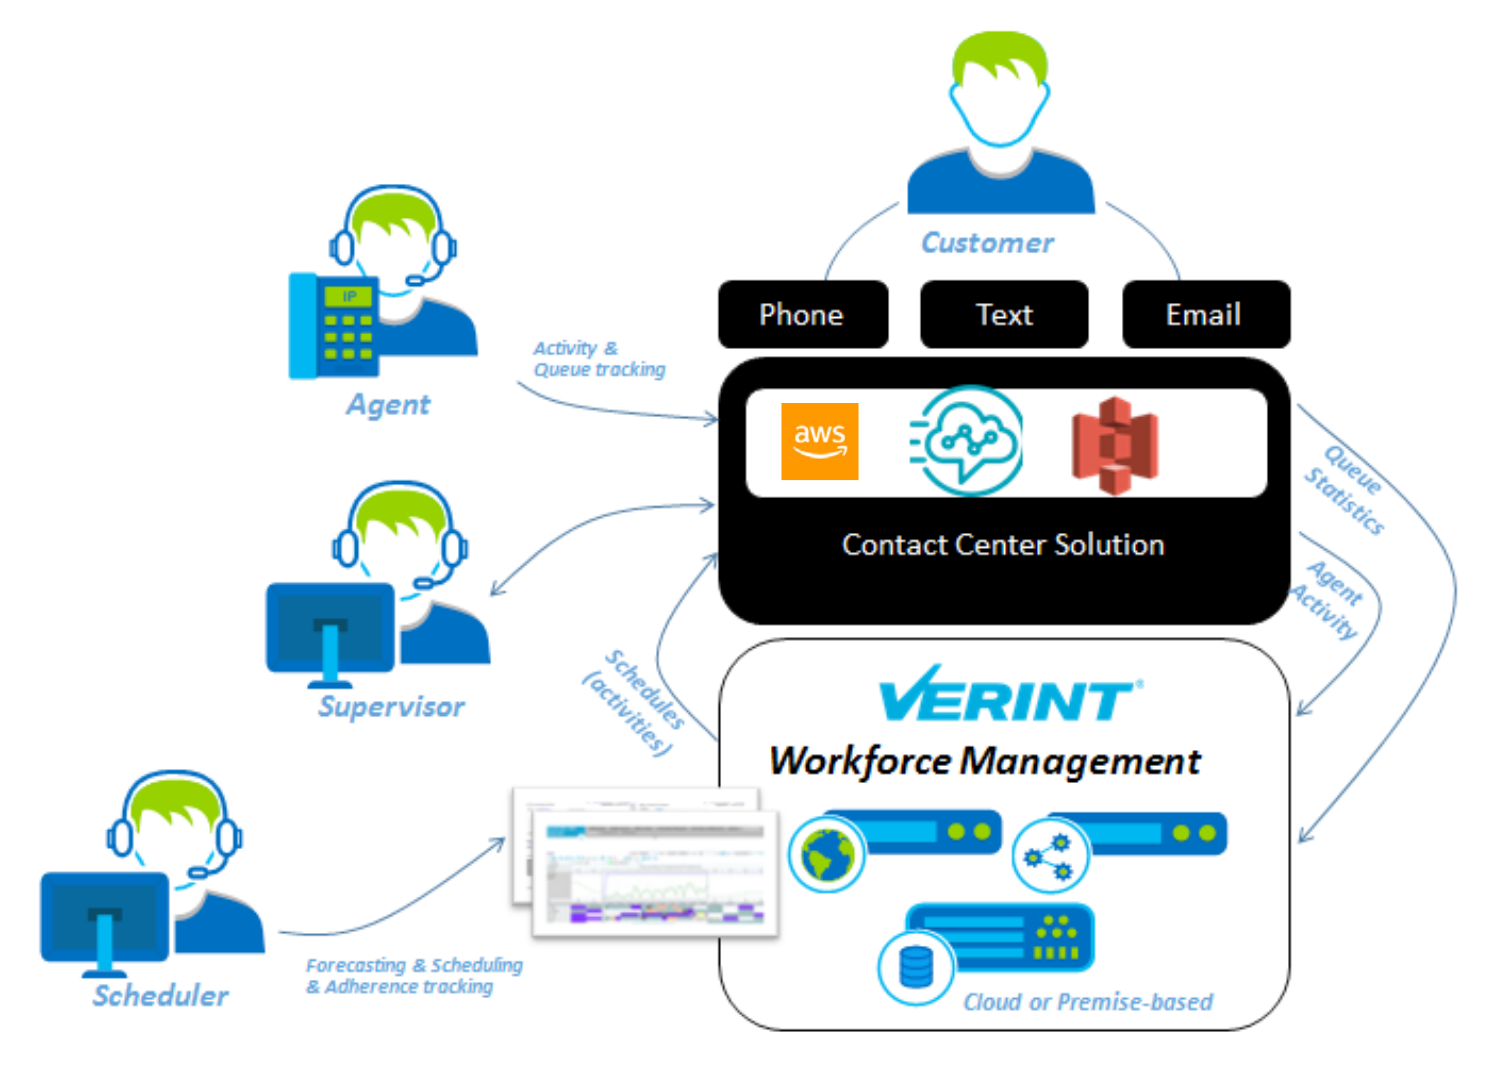 contact-center-verint-amazon-connect-solution-image-solutionspace